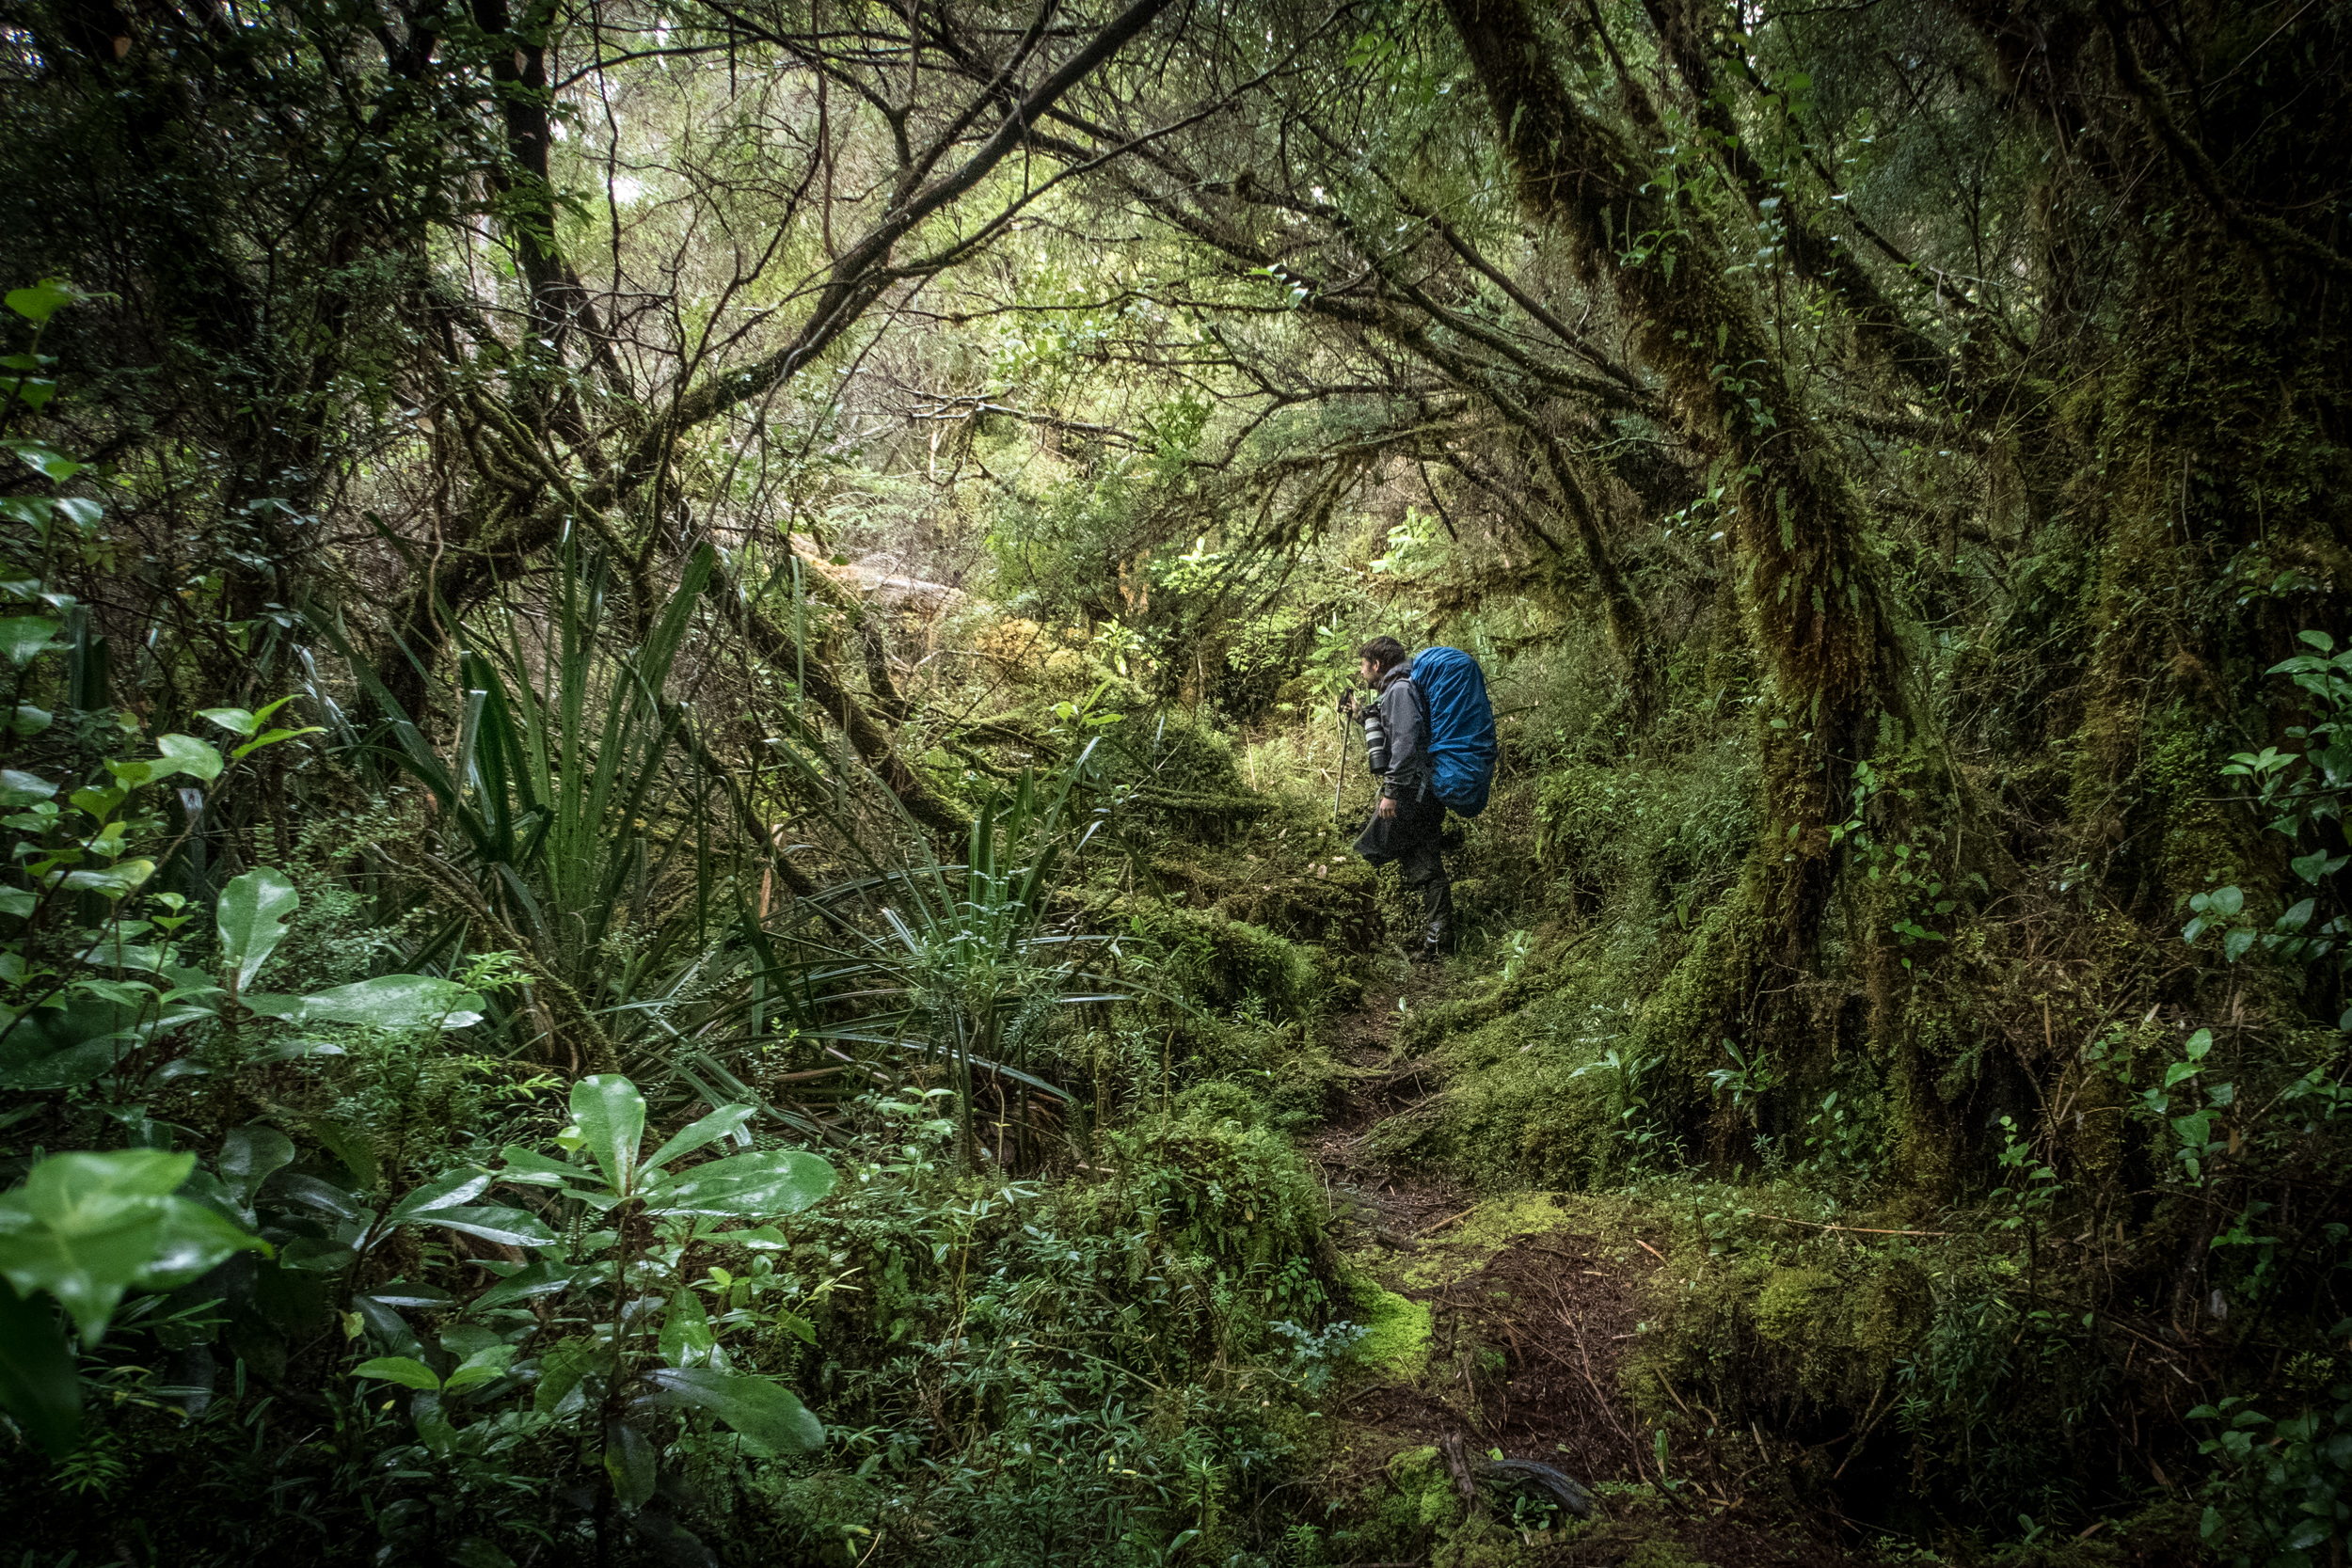 ... and the lush temperate rainforest